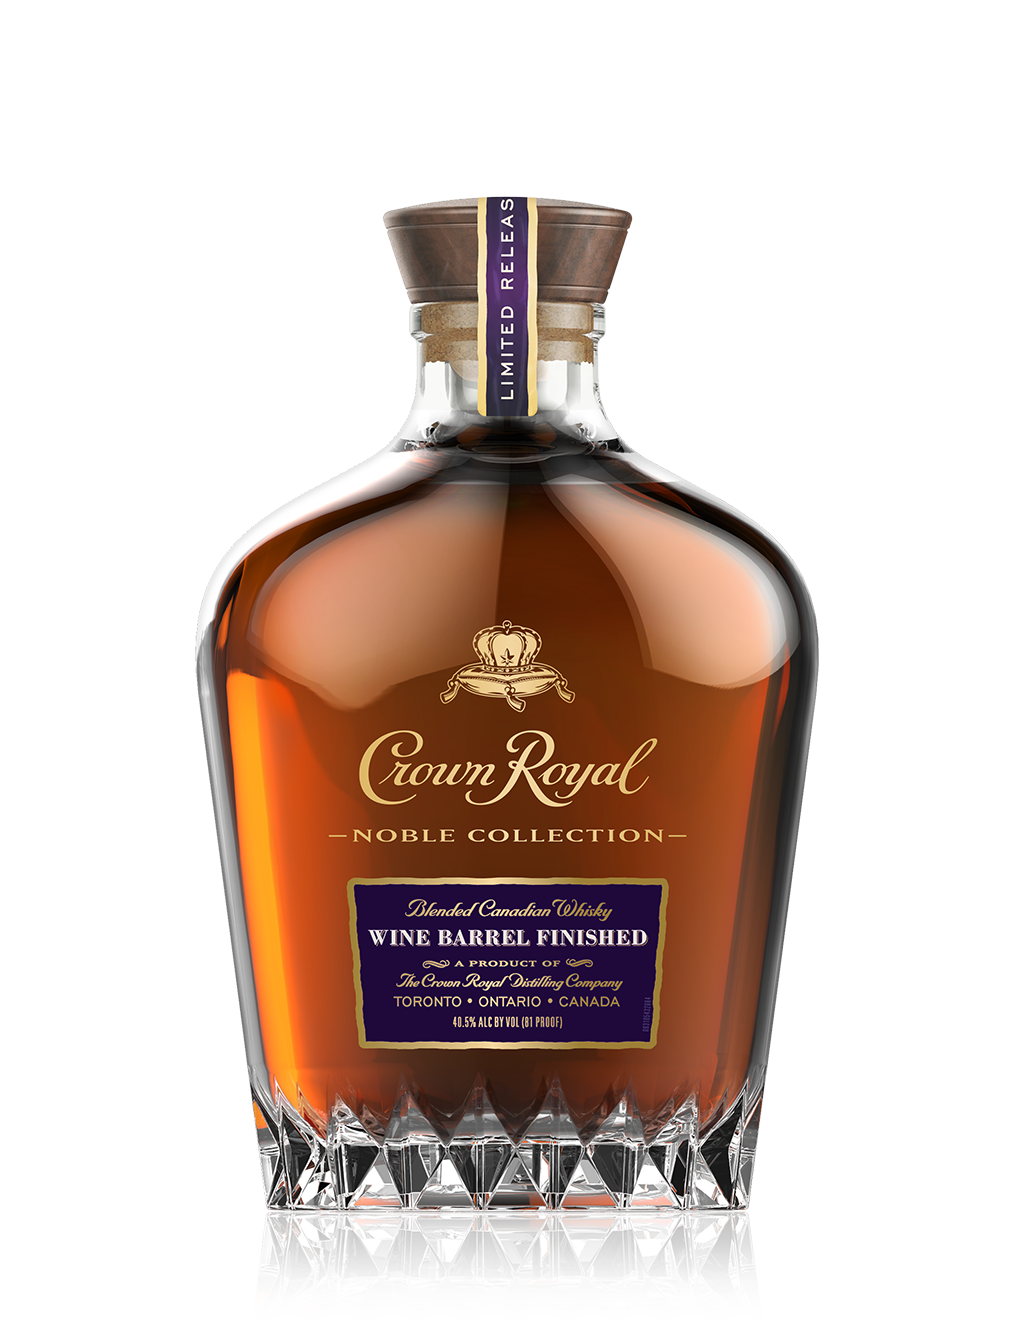 Thanks to Crown Royal for the image. Note that this is the wine barrel finish - the bottle is the same as the blender's mash.